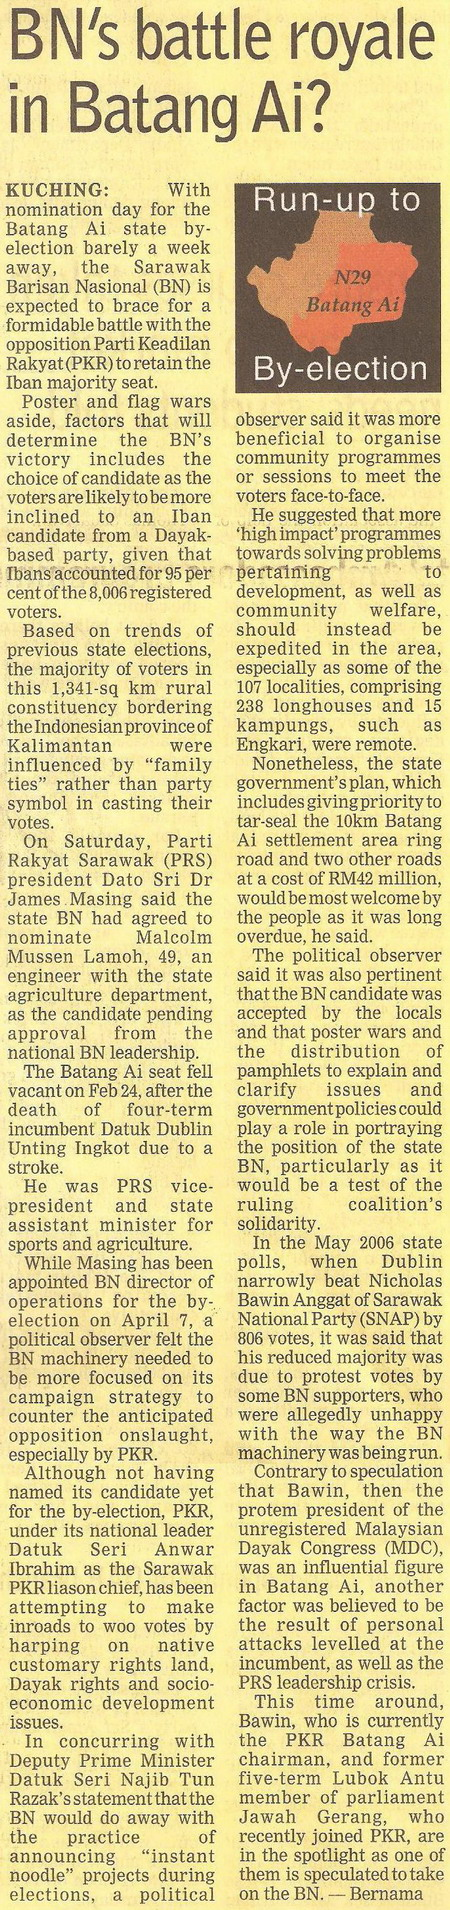 Borneo Post. 2009. BN's battle royale in Batang Ai? March 16, 2009 Edition.